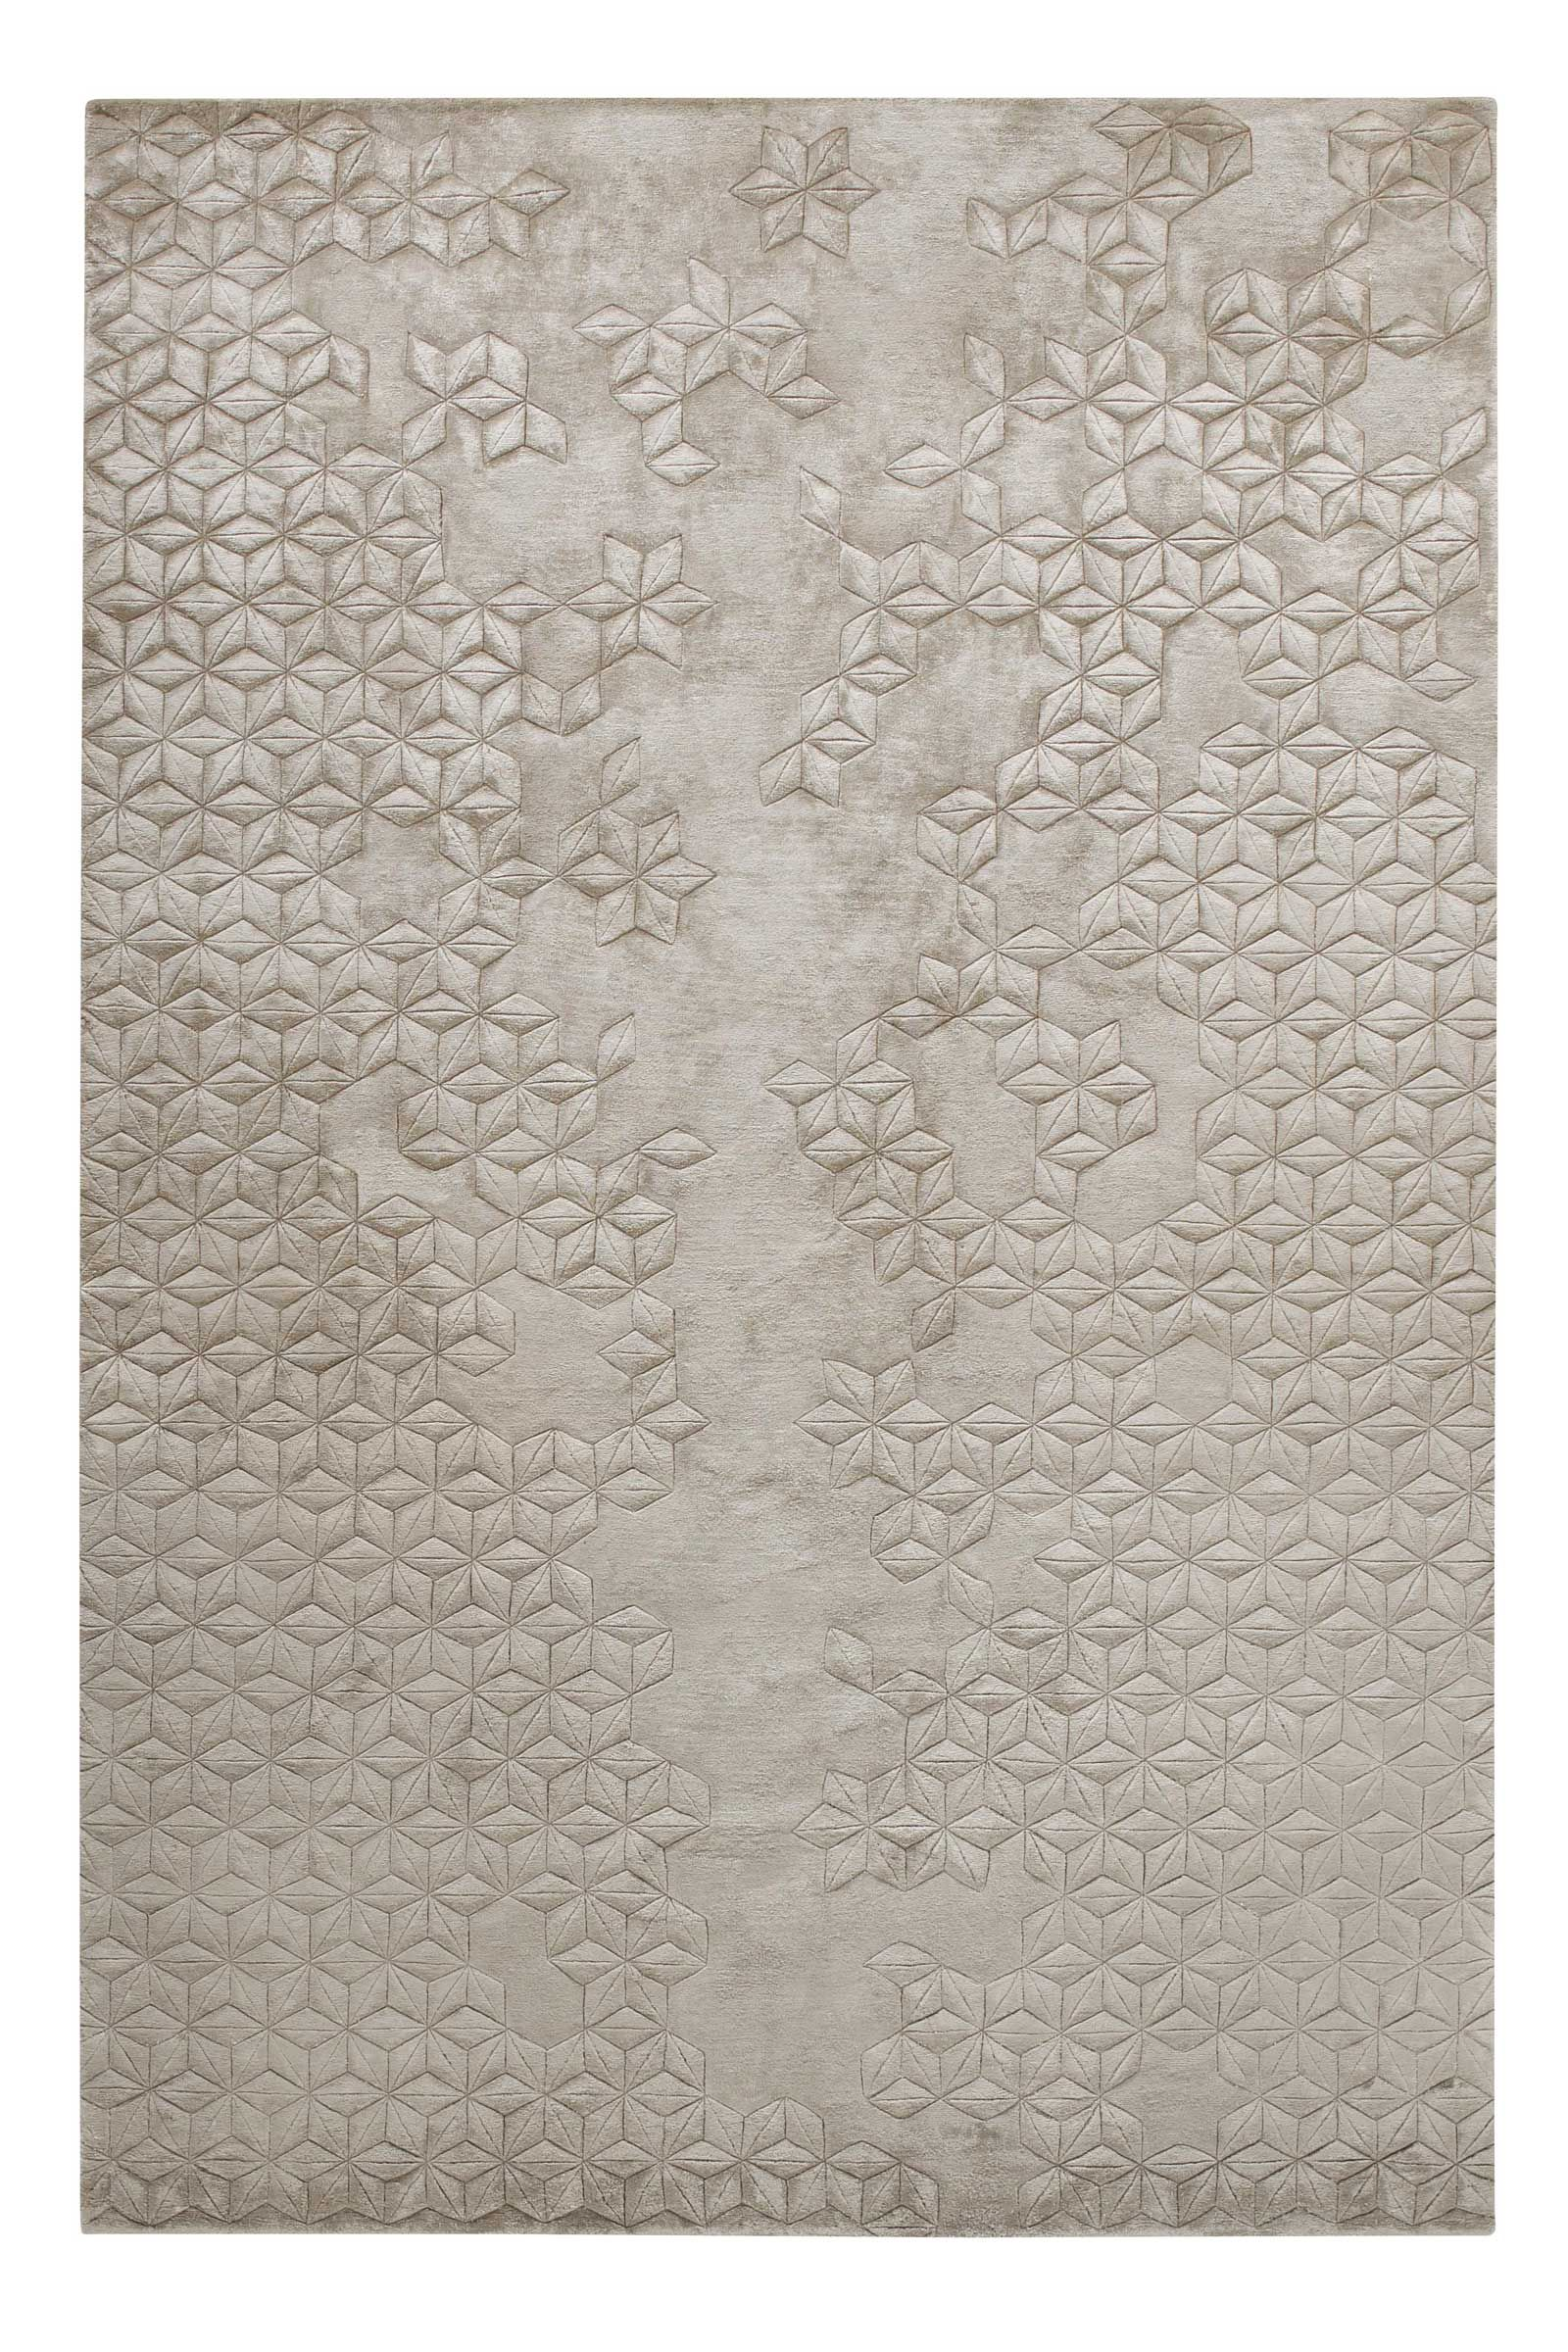 Star silk by helen amy murray silk contemporary hand knotted designer rugs